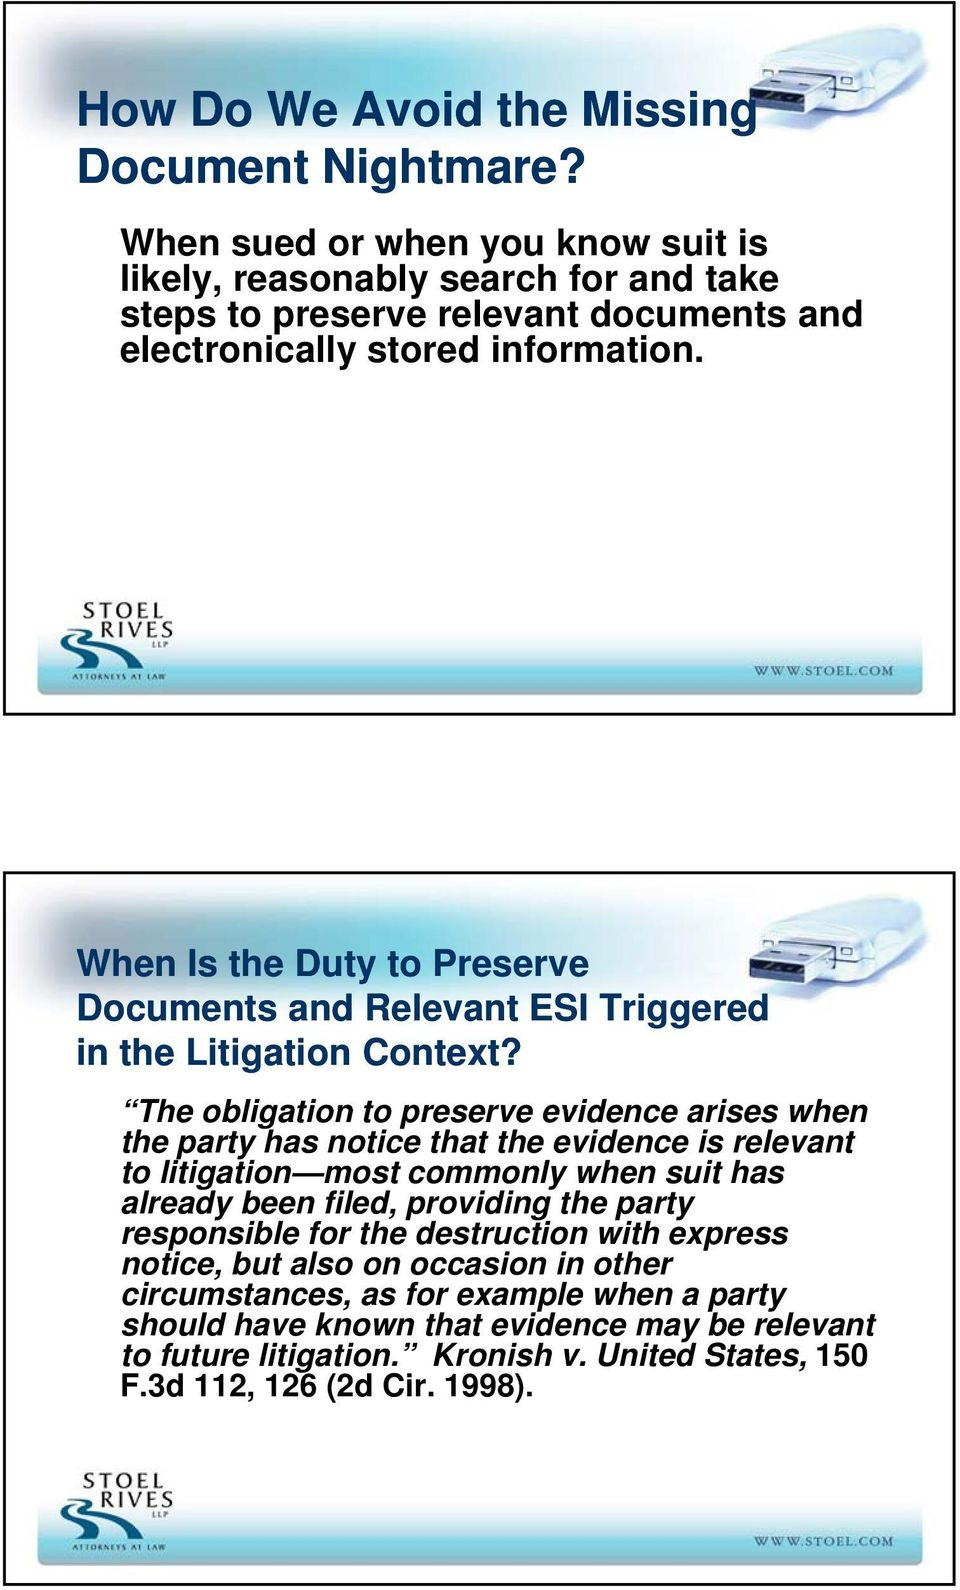 When Is the Duty to Preserve Documents and Relevant ESI Triggered in the Litigation Context?